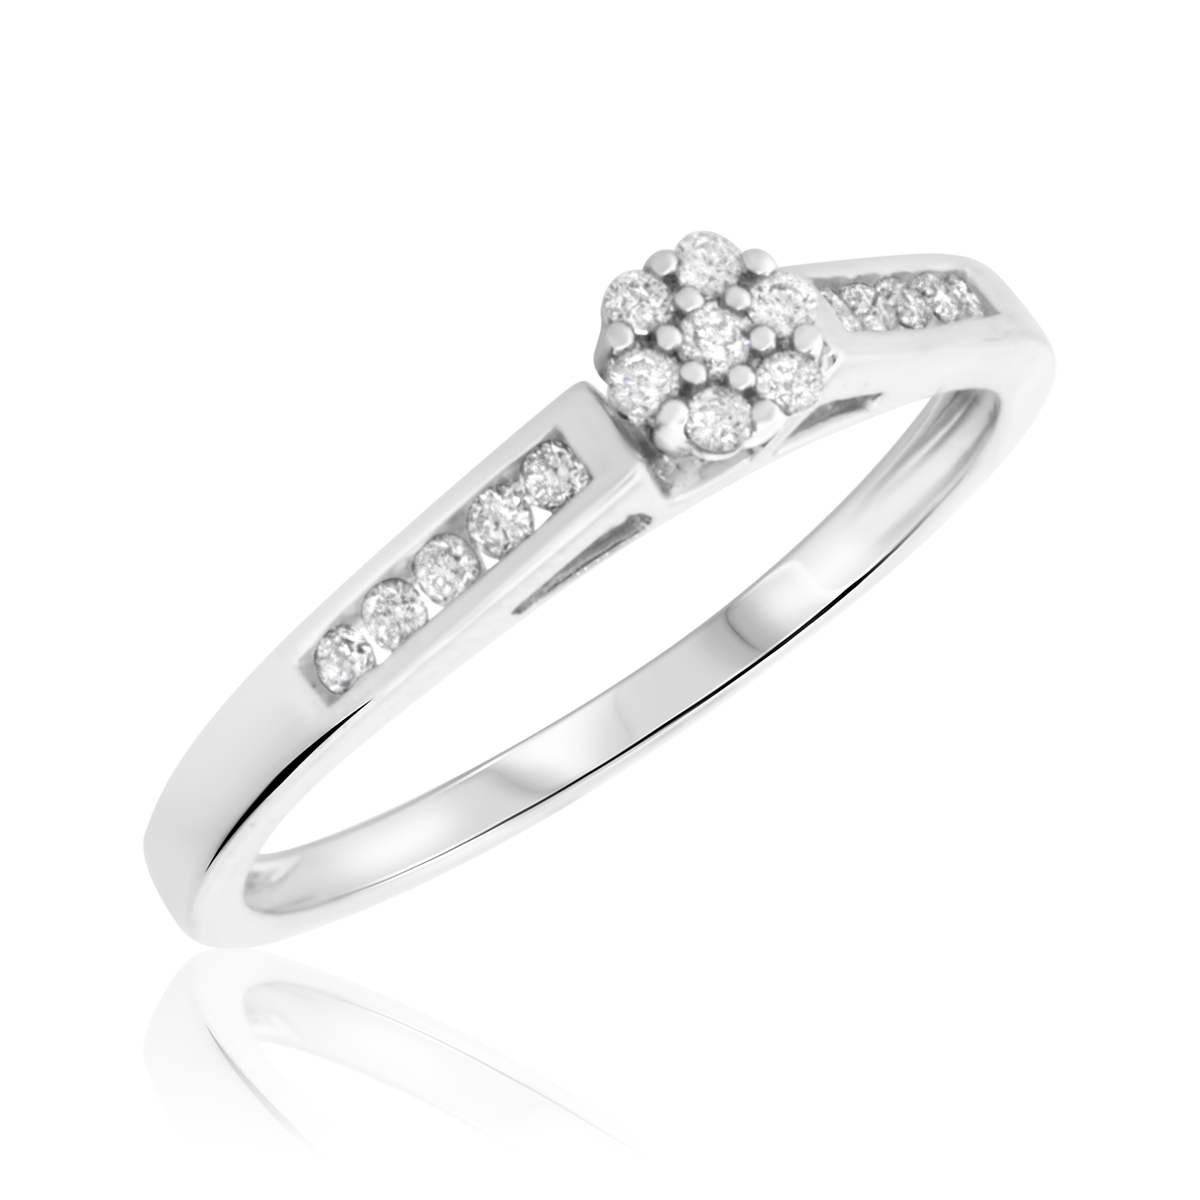 1/5 Carat T.W. Round Cut Diamond Ladies Engagement Ring 10K White Gold